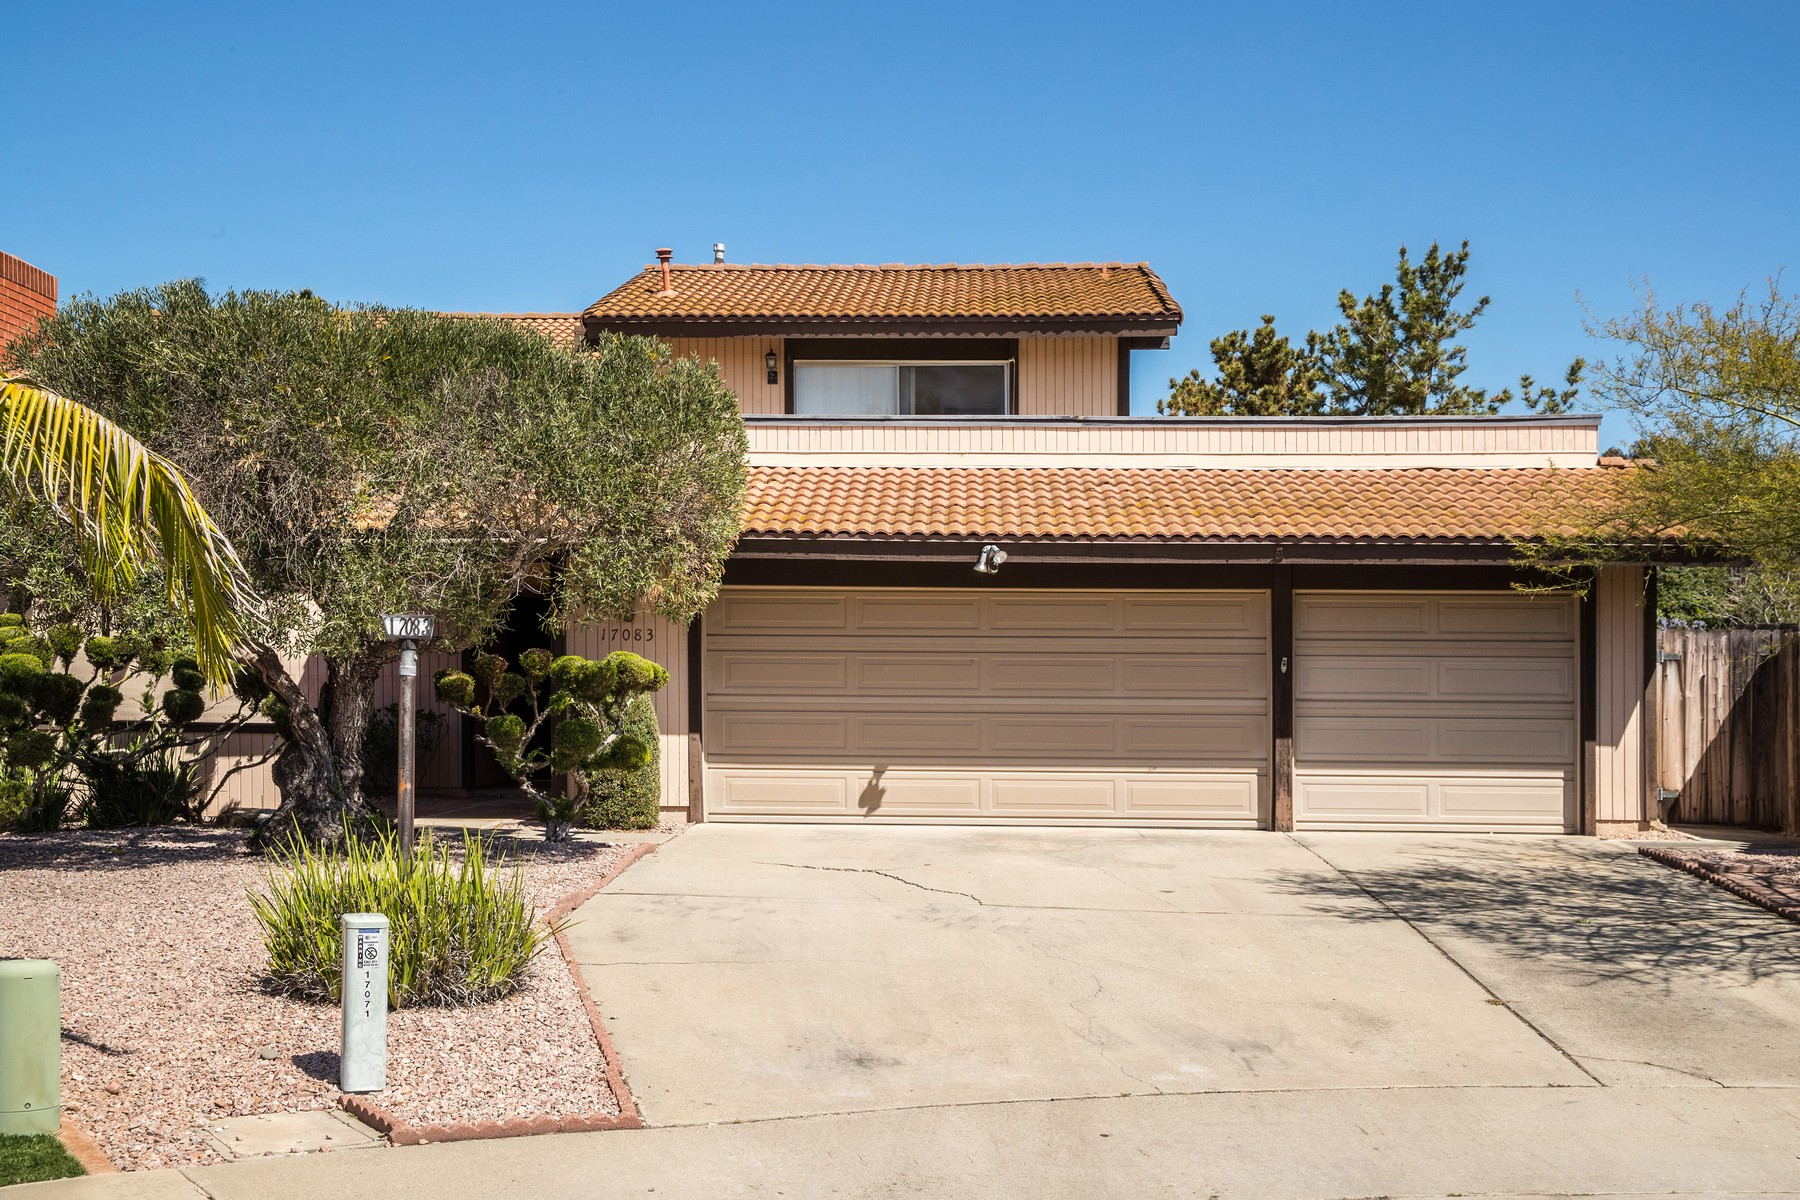 Single Family Home for Sale at 17083 Abra Way San Diego, California, 92128 United States